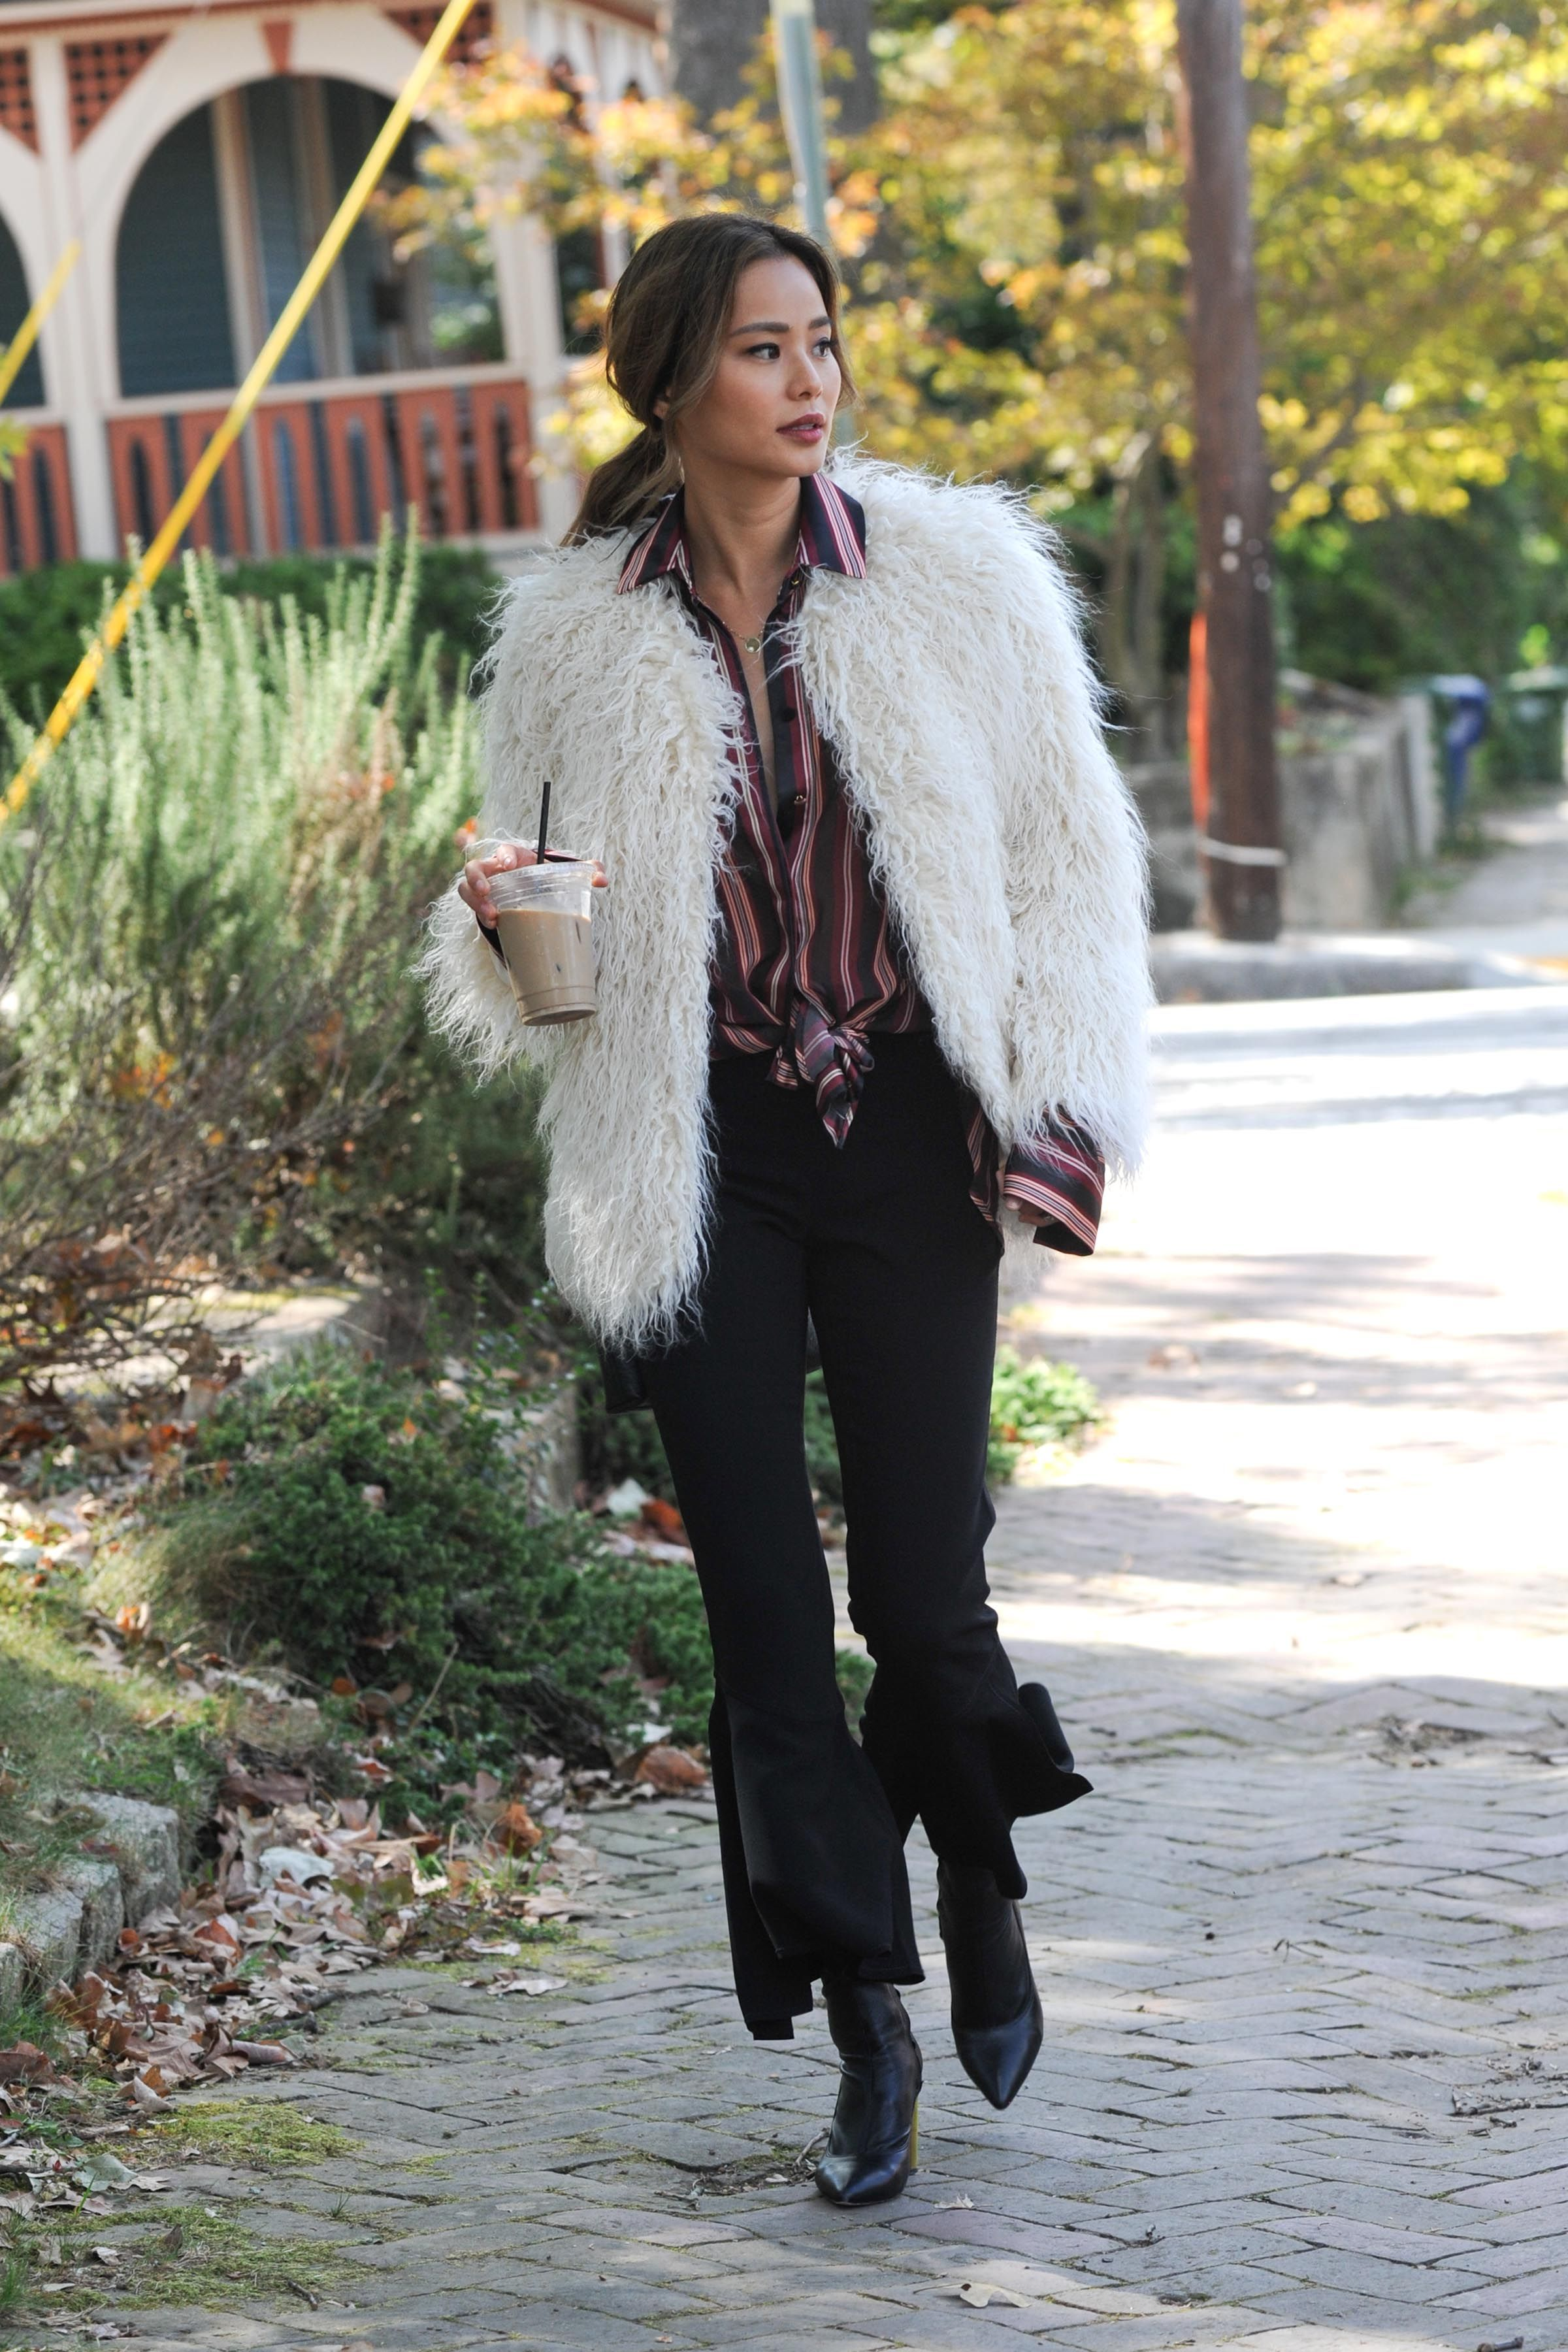 f1adfa662 Spotted! Jamie Chung tops off her chic look with a H&M faux fur ...